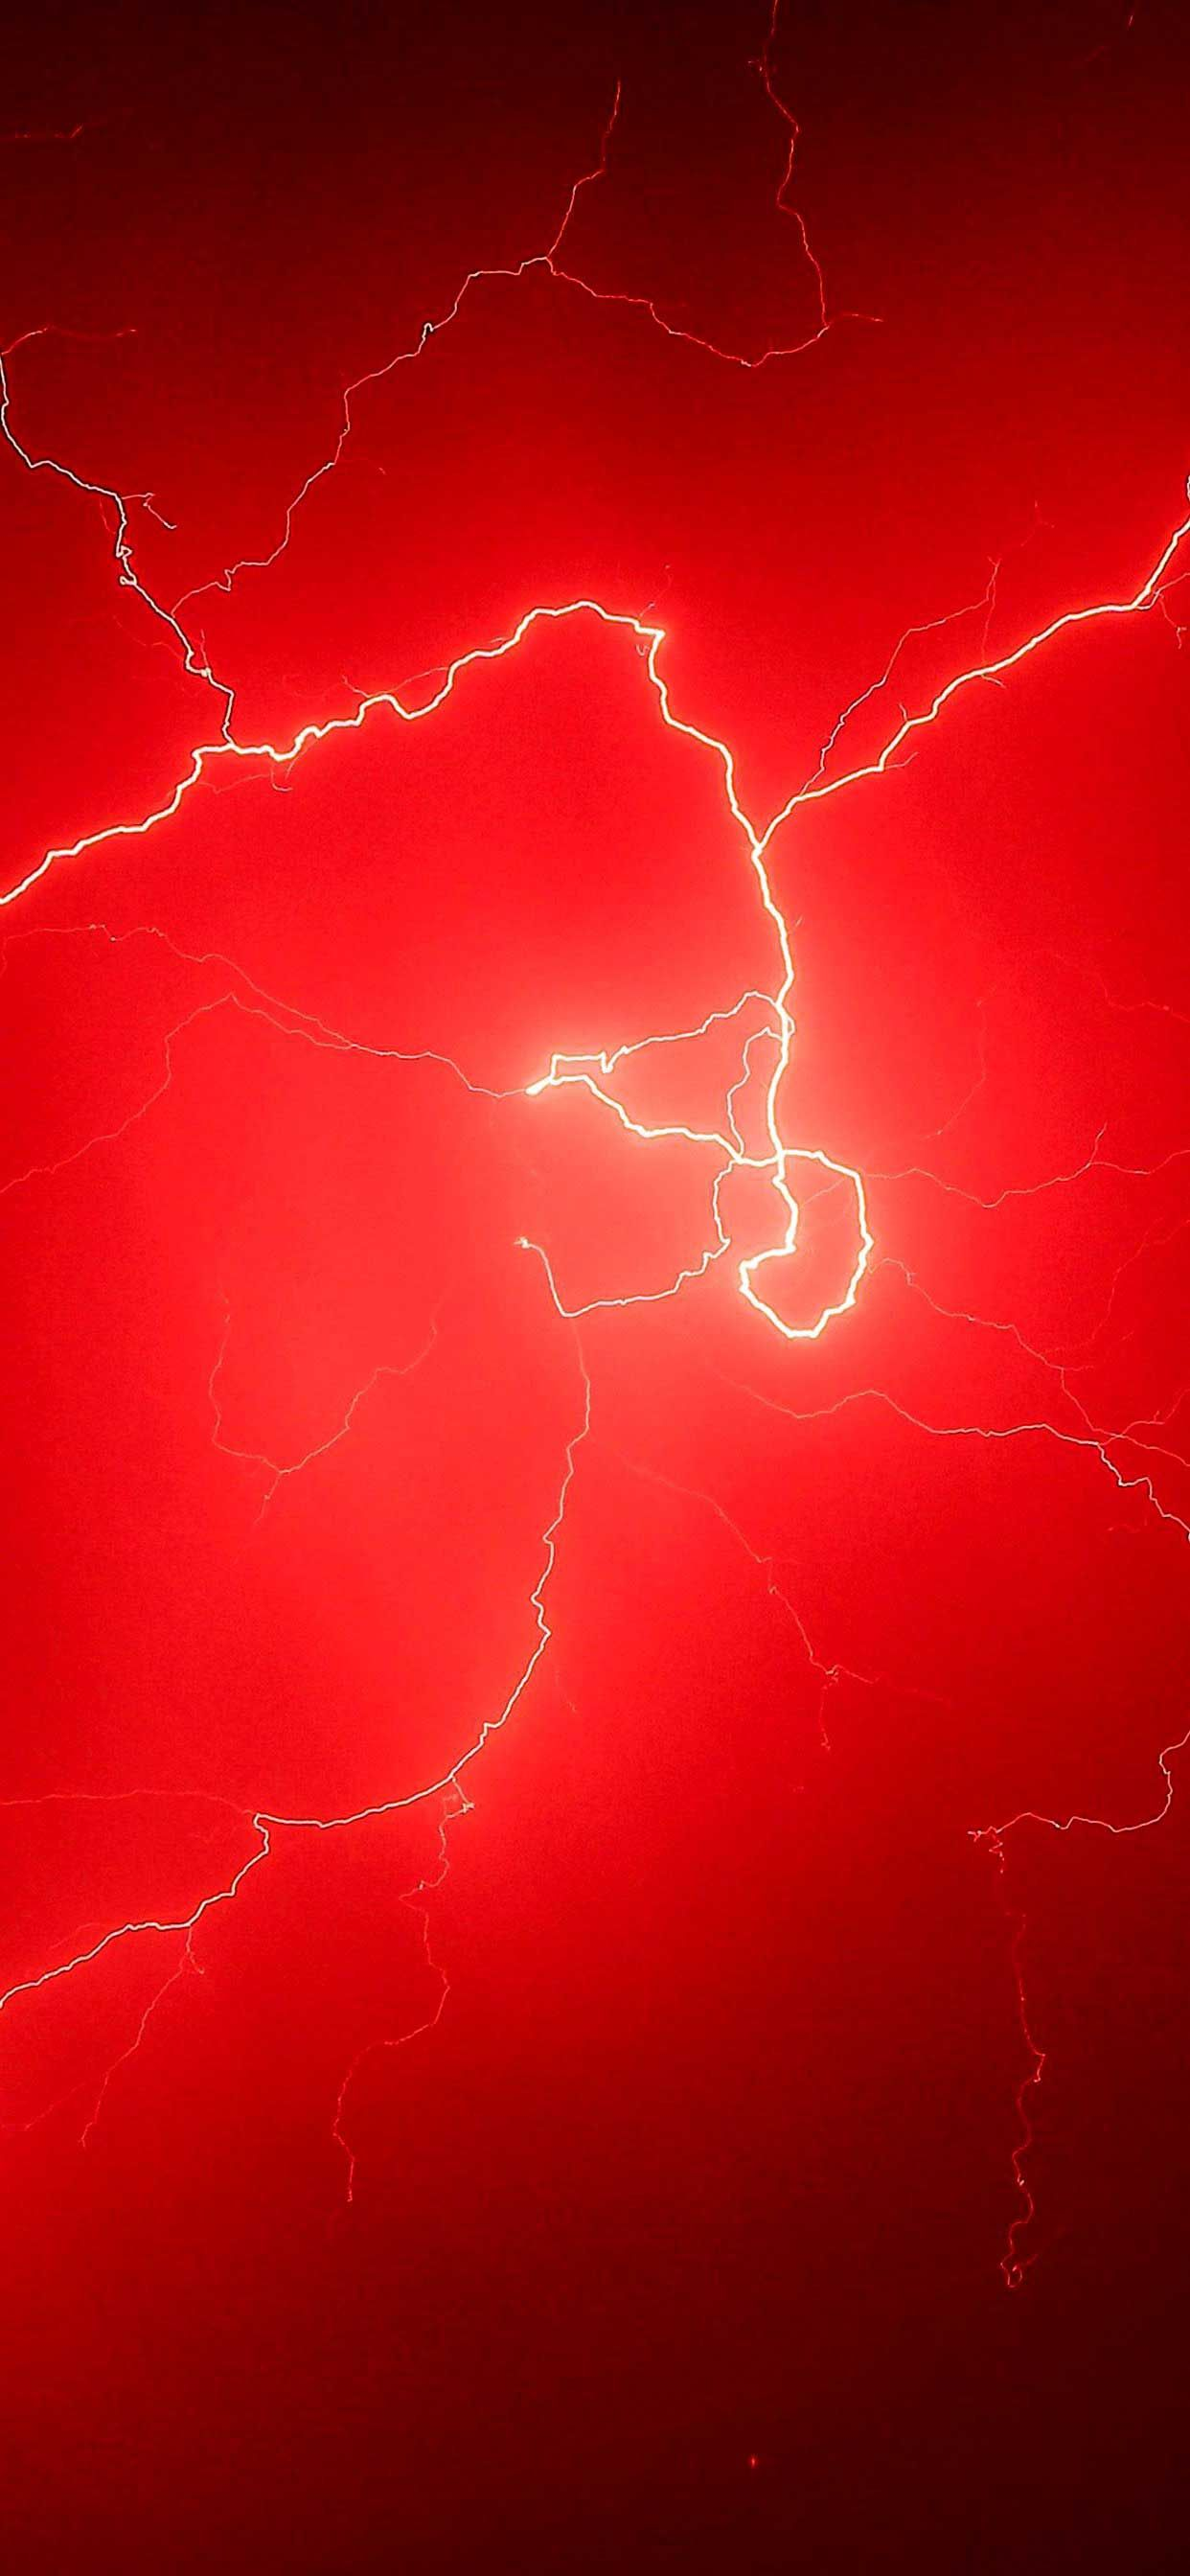 lightning storm red sky k d Iphone Pro Ma Wallpaper in ...